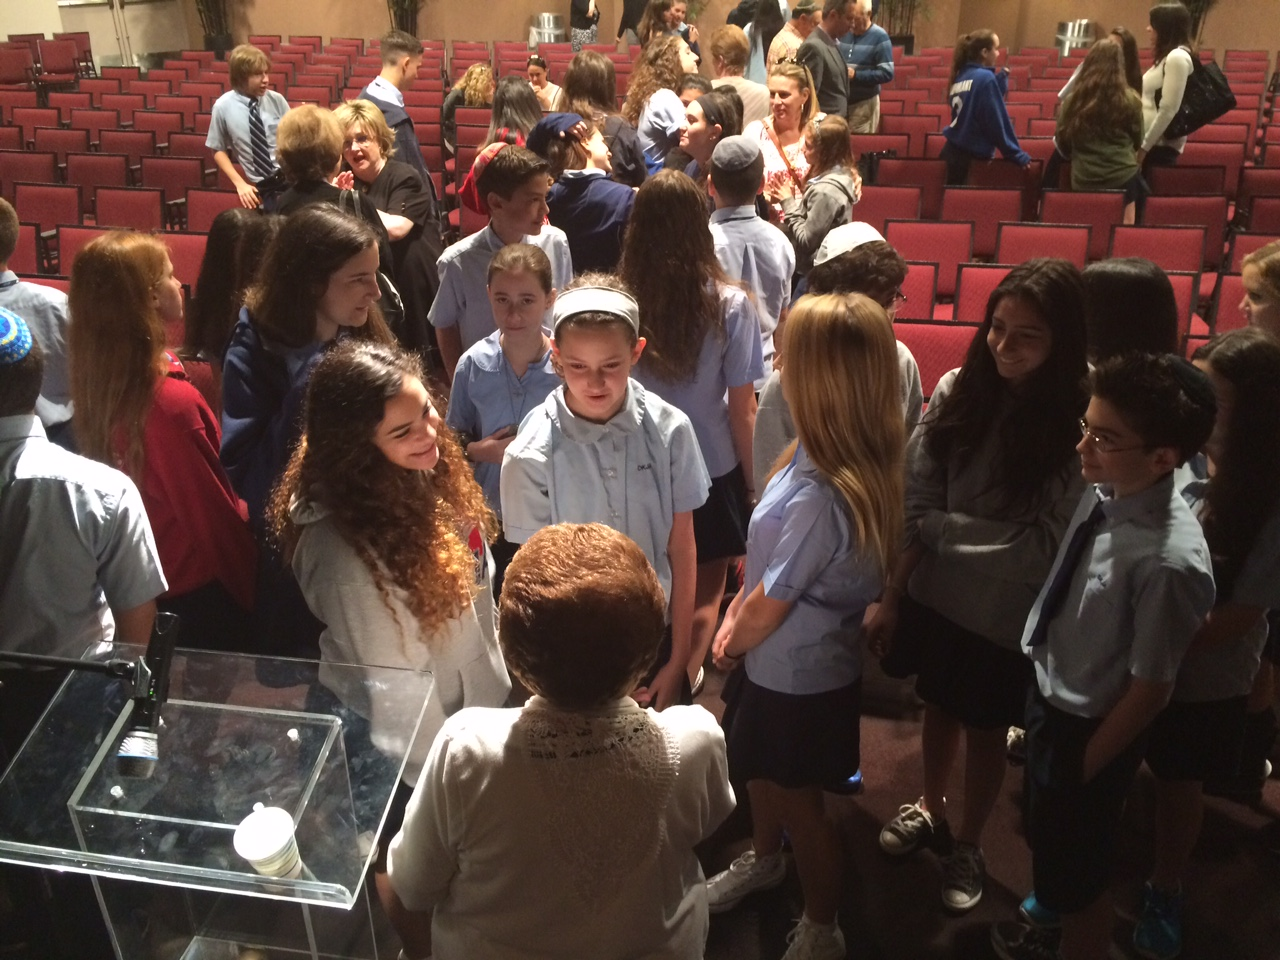 Yaffa Englander and her classmates speak with Holocaust survivor Rena Finder